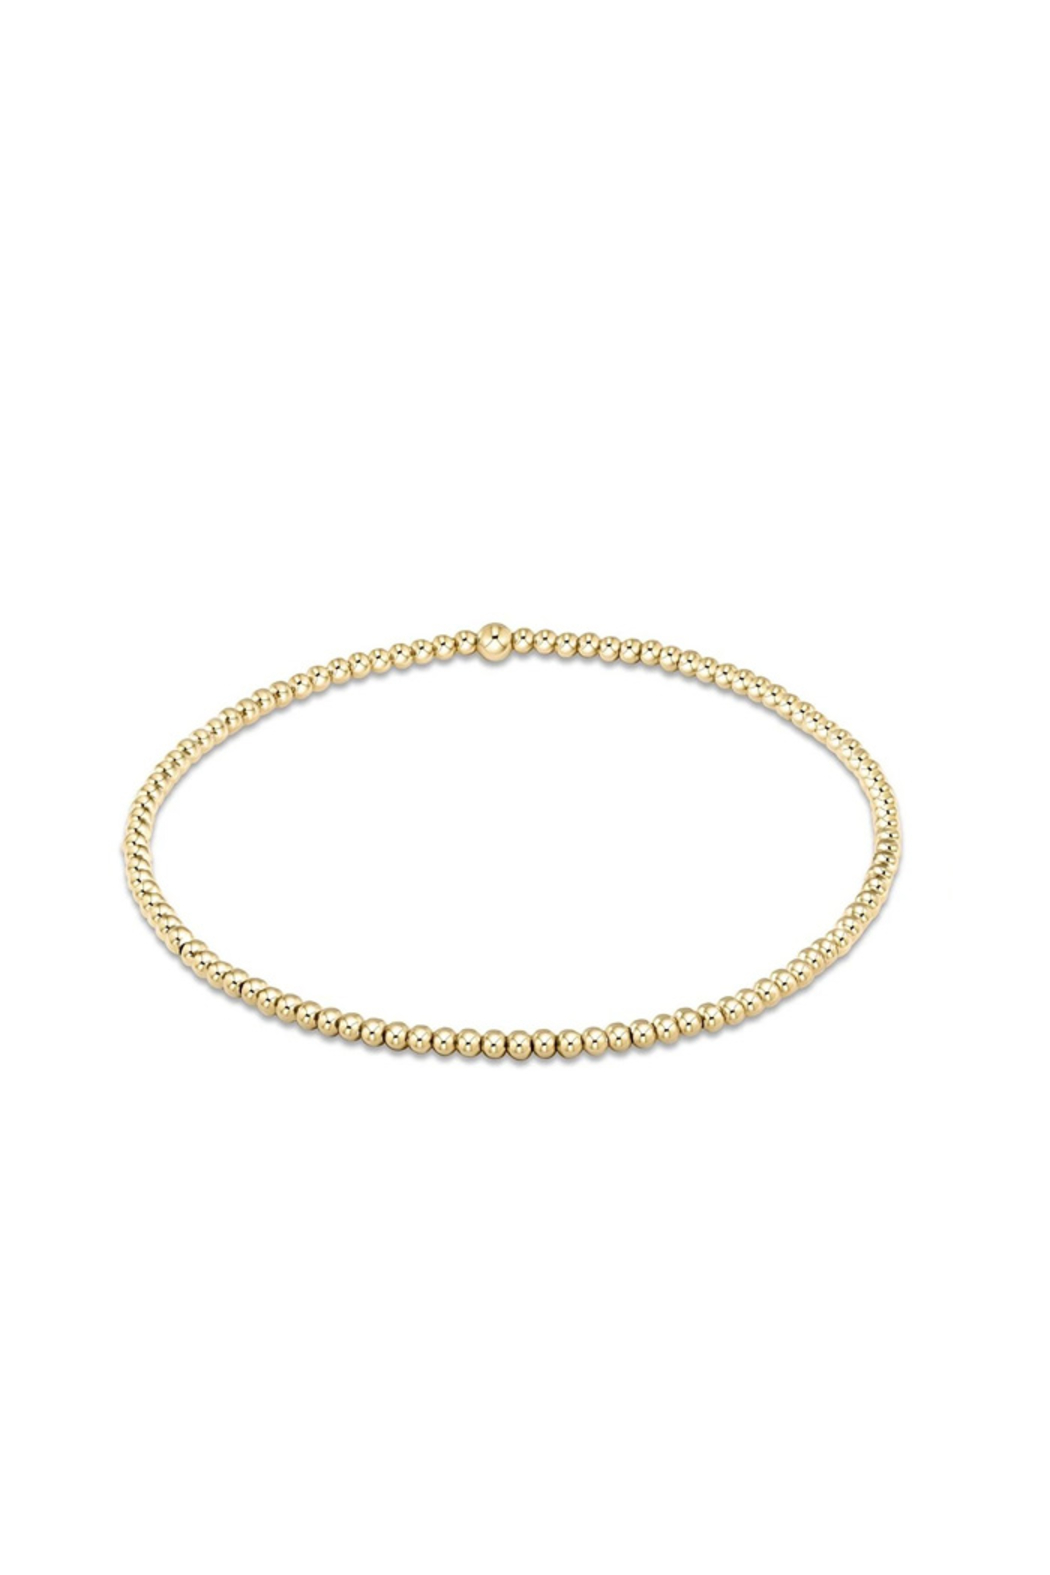 enewton designs Classic Gold 2mm Bead Bracelet - Front Cropped Image